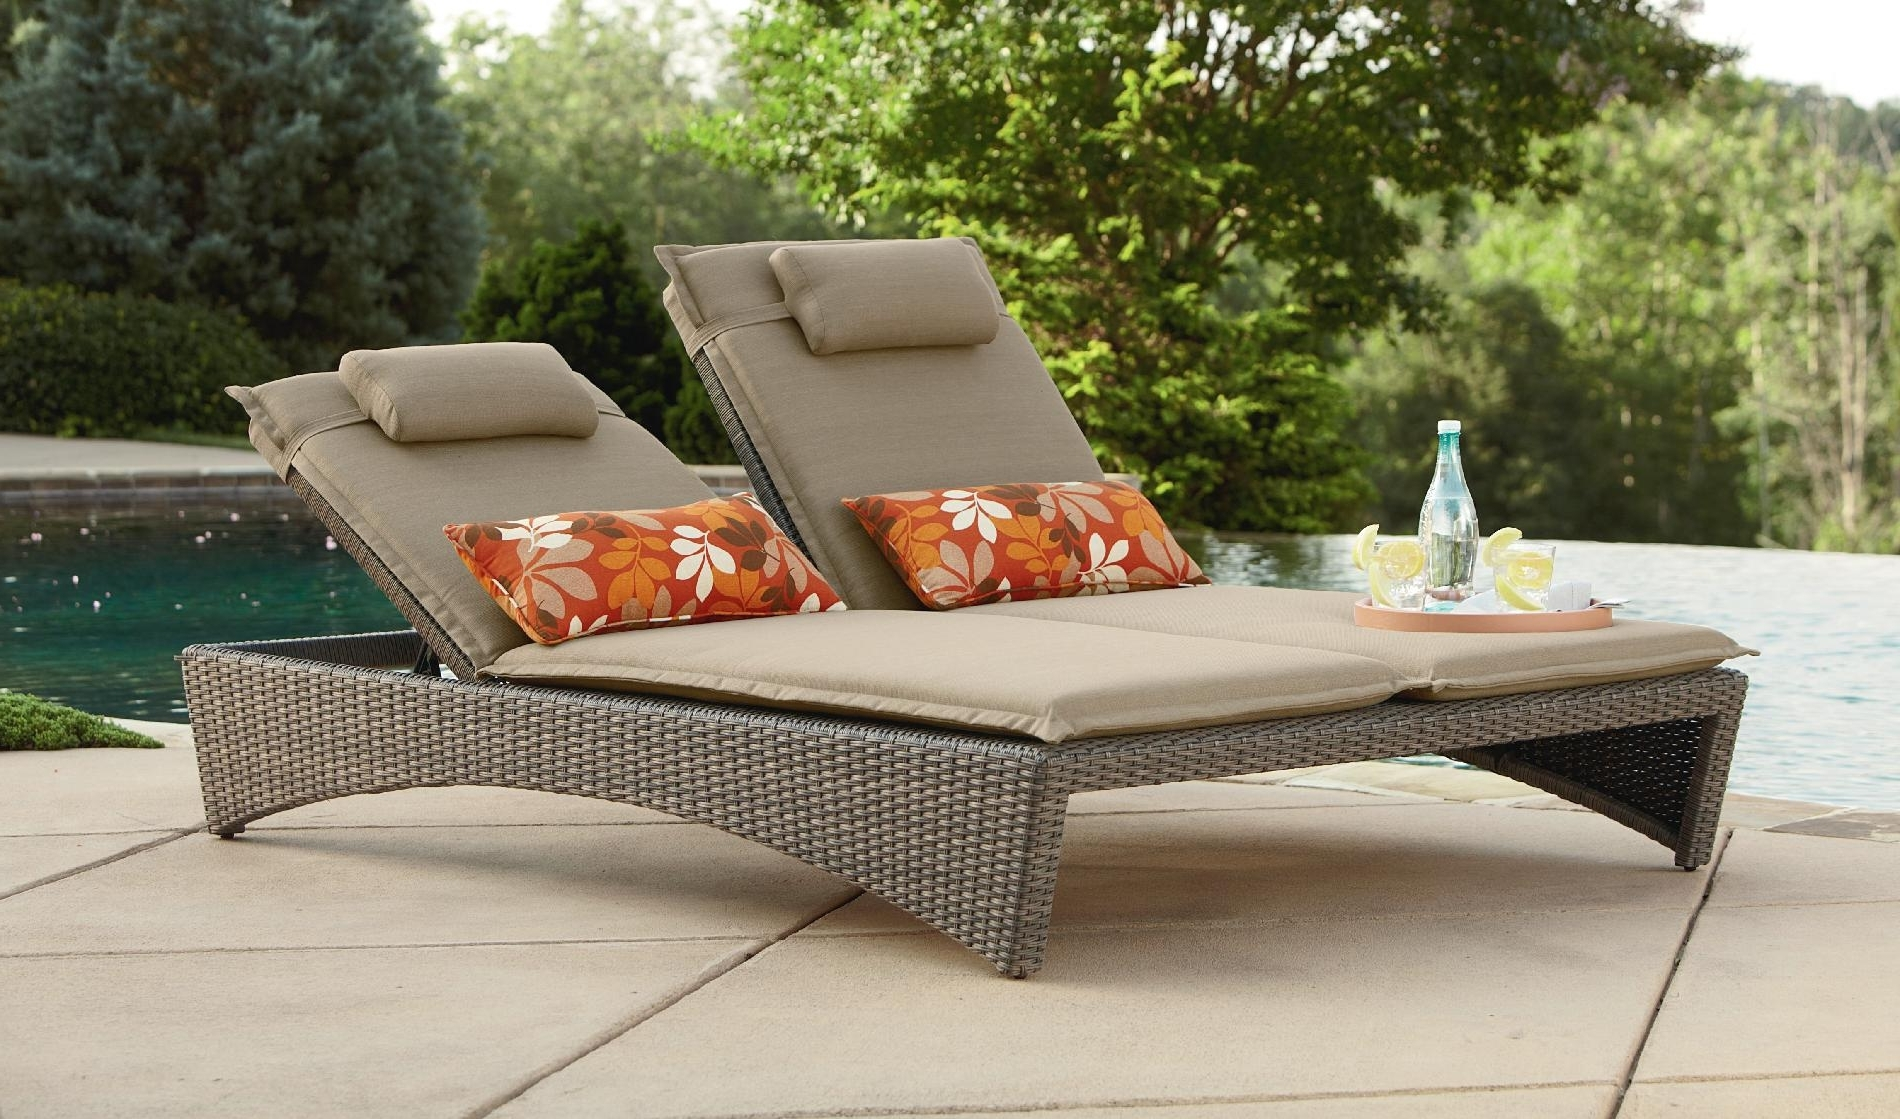 Cheap Folding Chaise Lounge Chairs For Outdoor For Most Popular Best Pool Chaise Lounge Chairs — Bed And Shower : Decorating Pool (View 10 of 15)